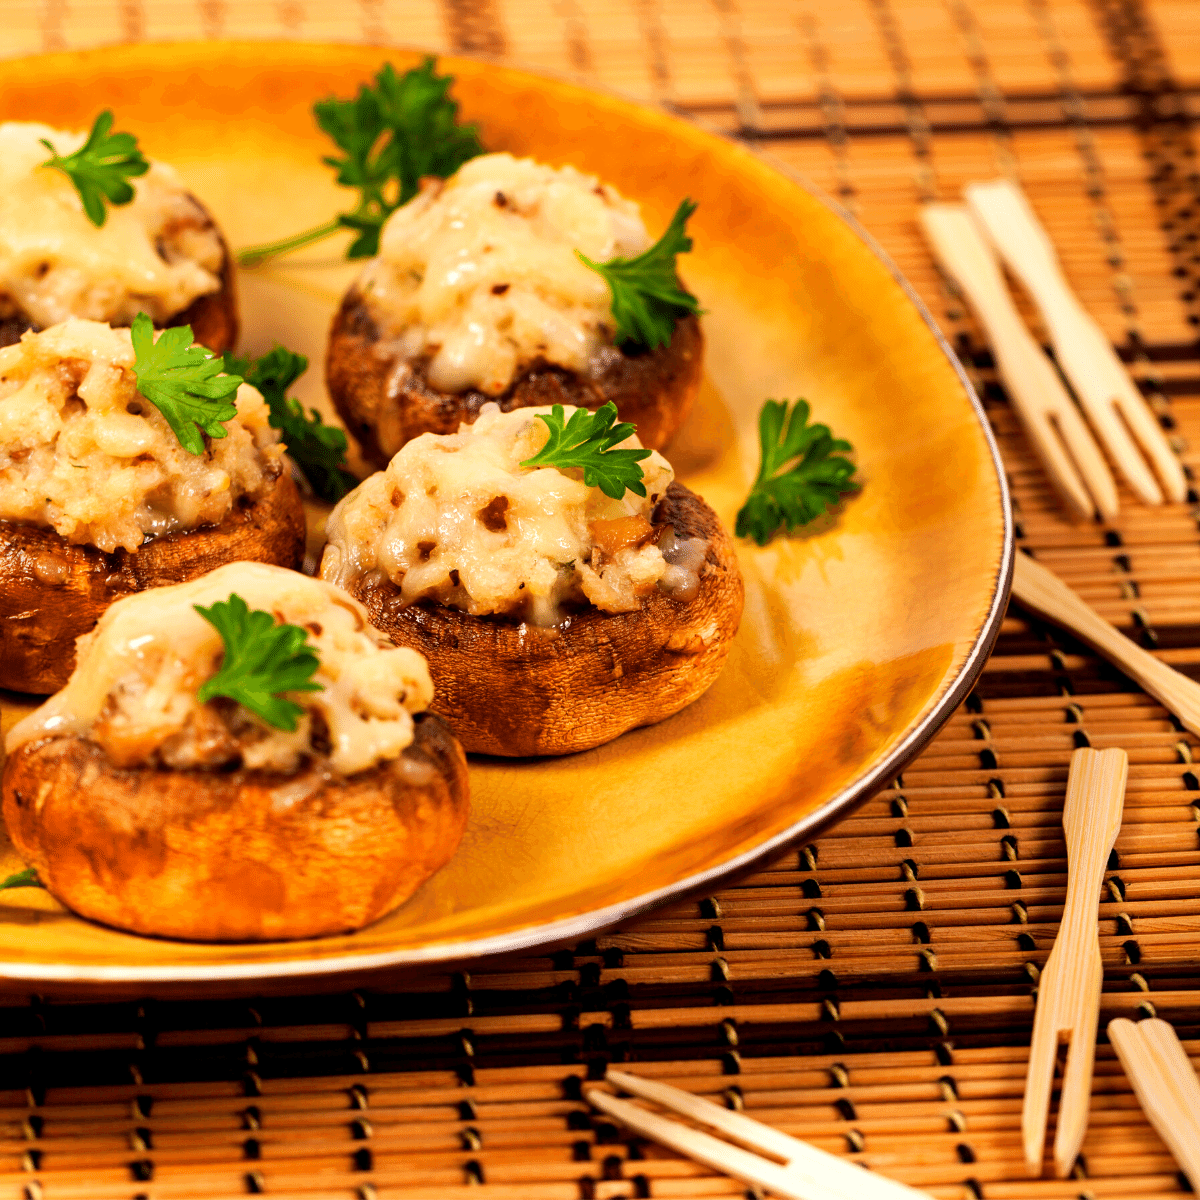 Low Carb Stuffed Mushrooms FI